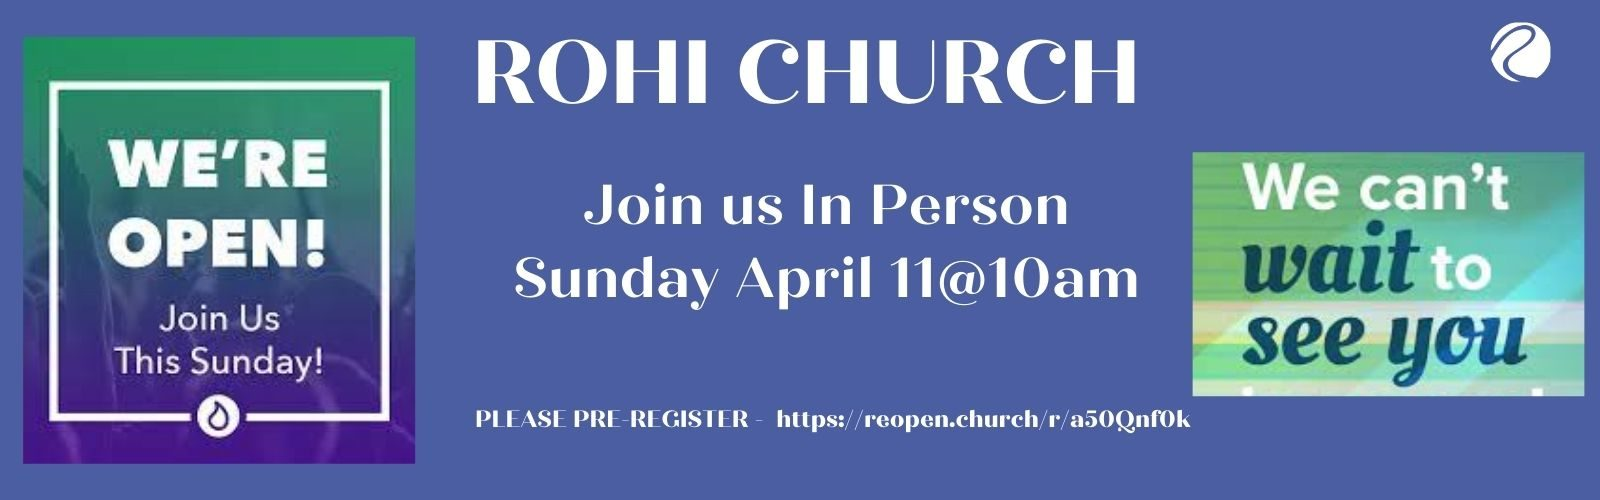 Rohi is Re-opening!